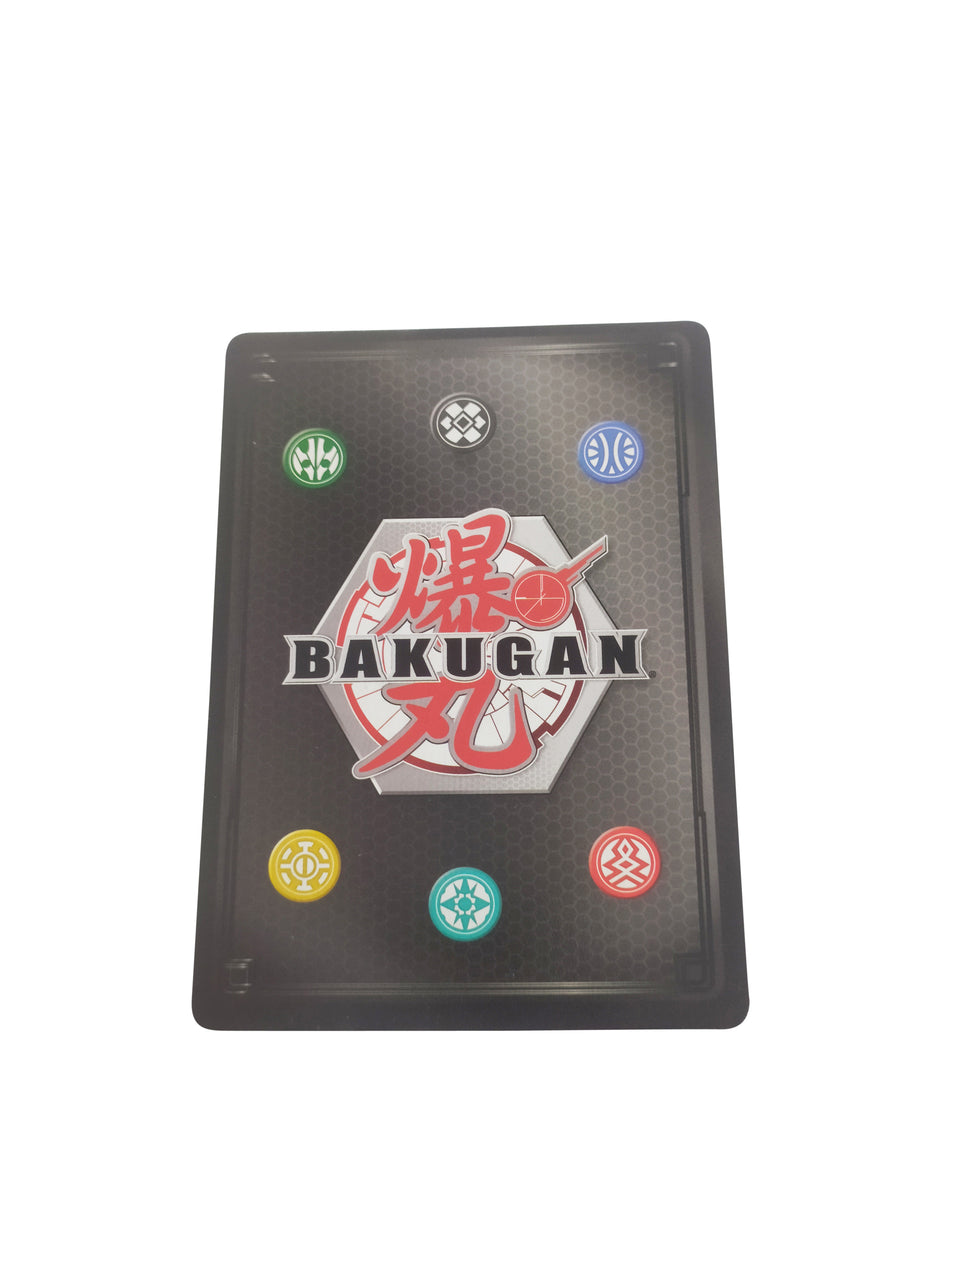 bakugan 2 cards - cyndeous & pegatrix